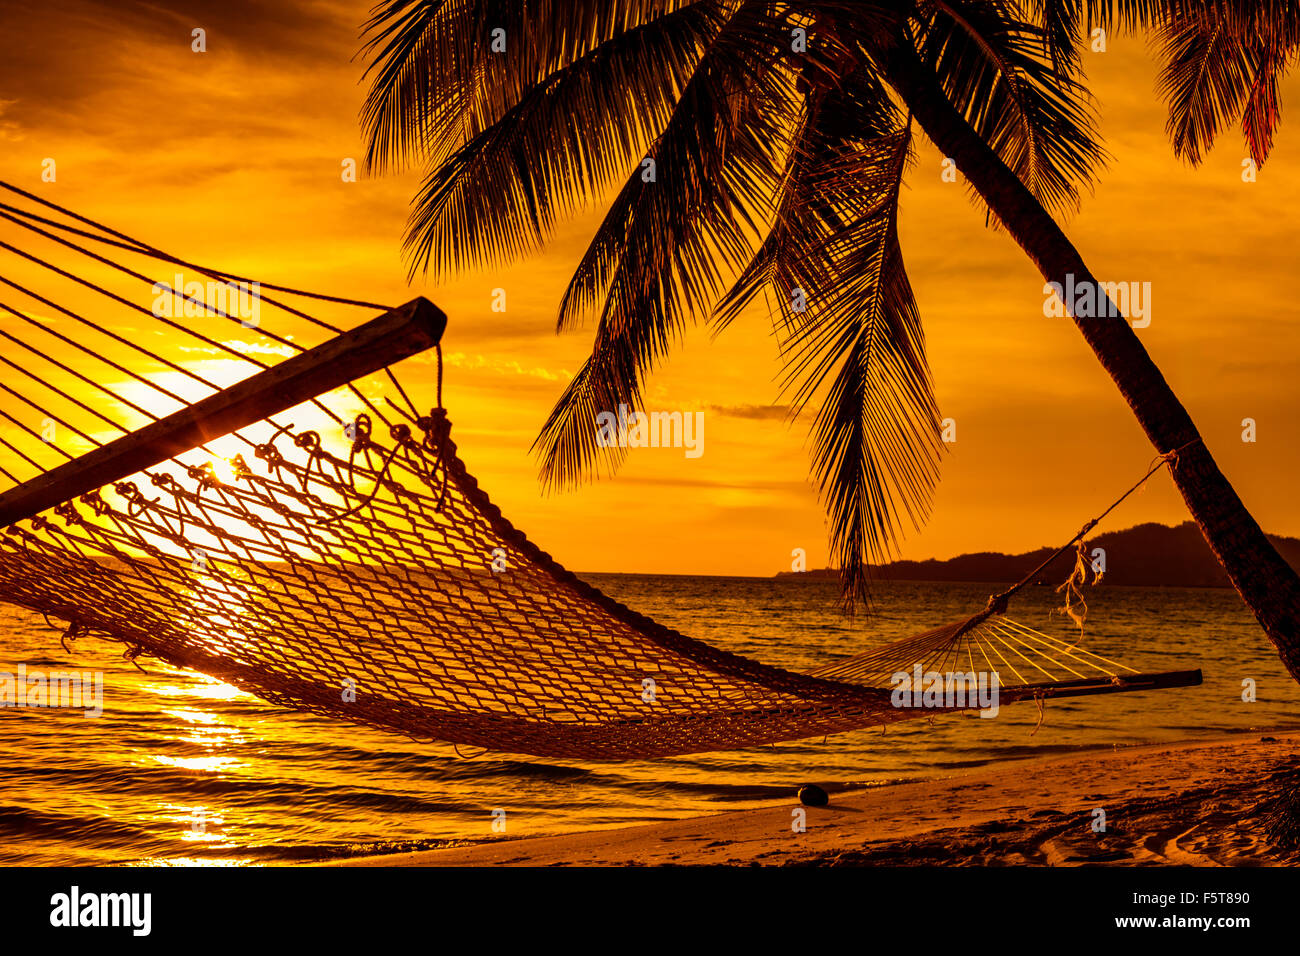 Silhouette Of Hammock And Palm Trees On A Tropical Beach